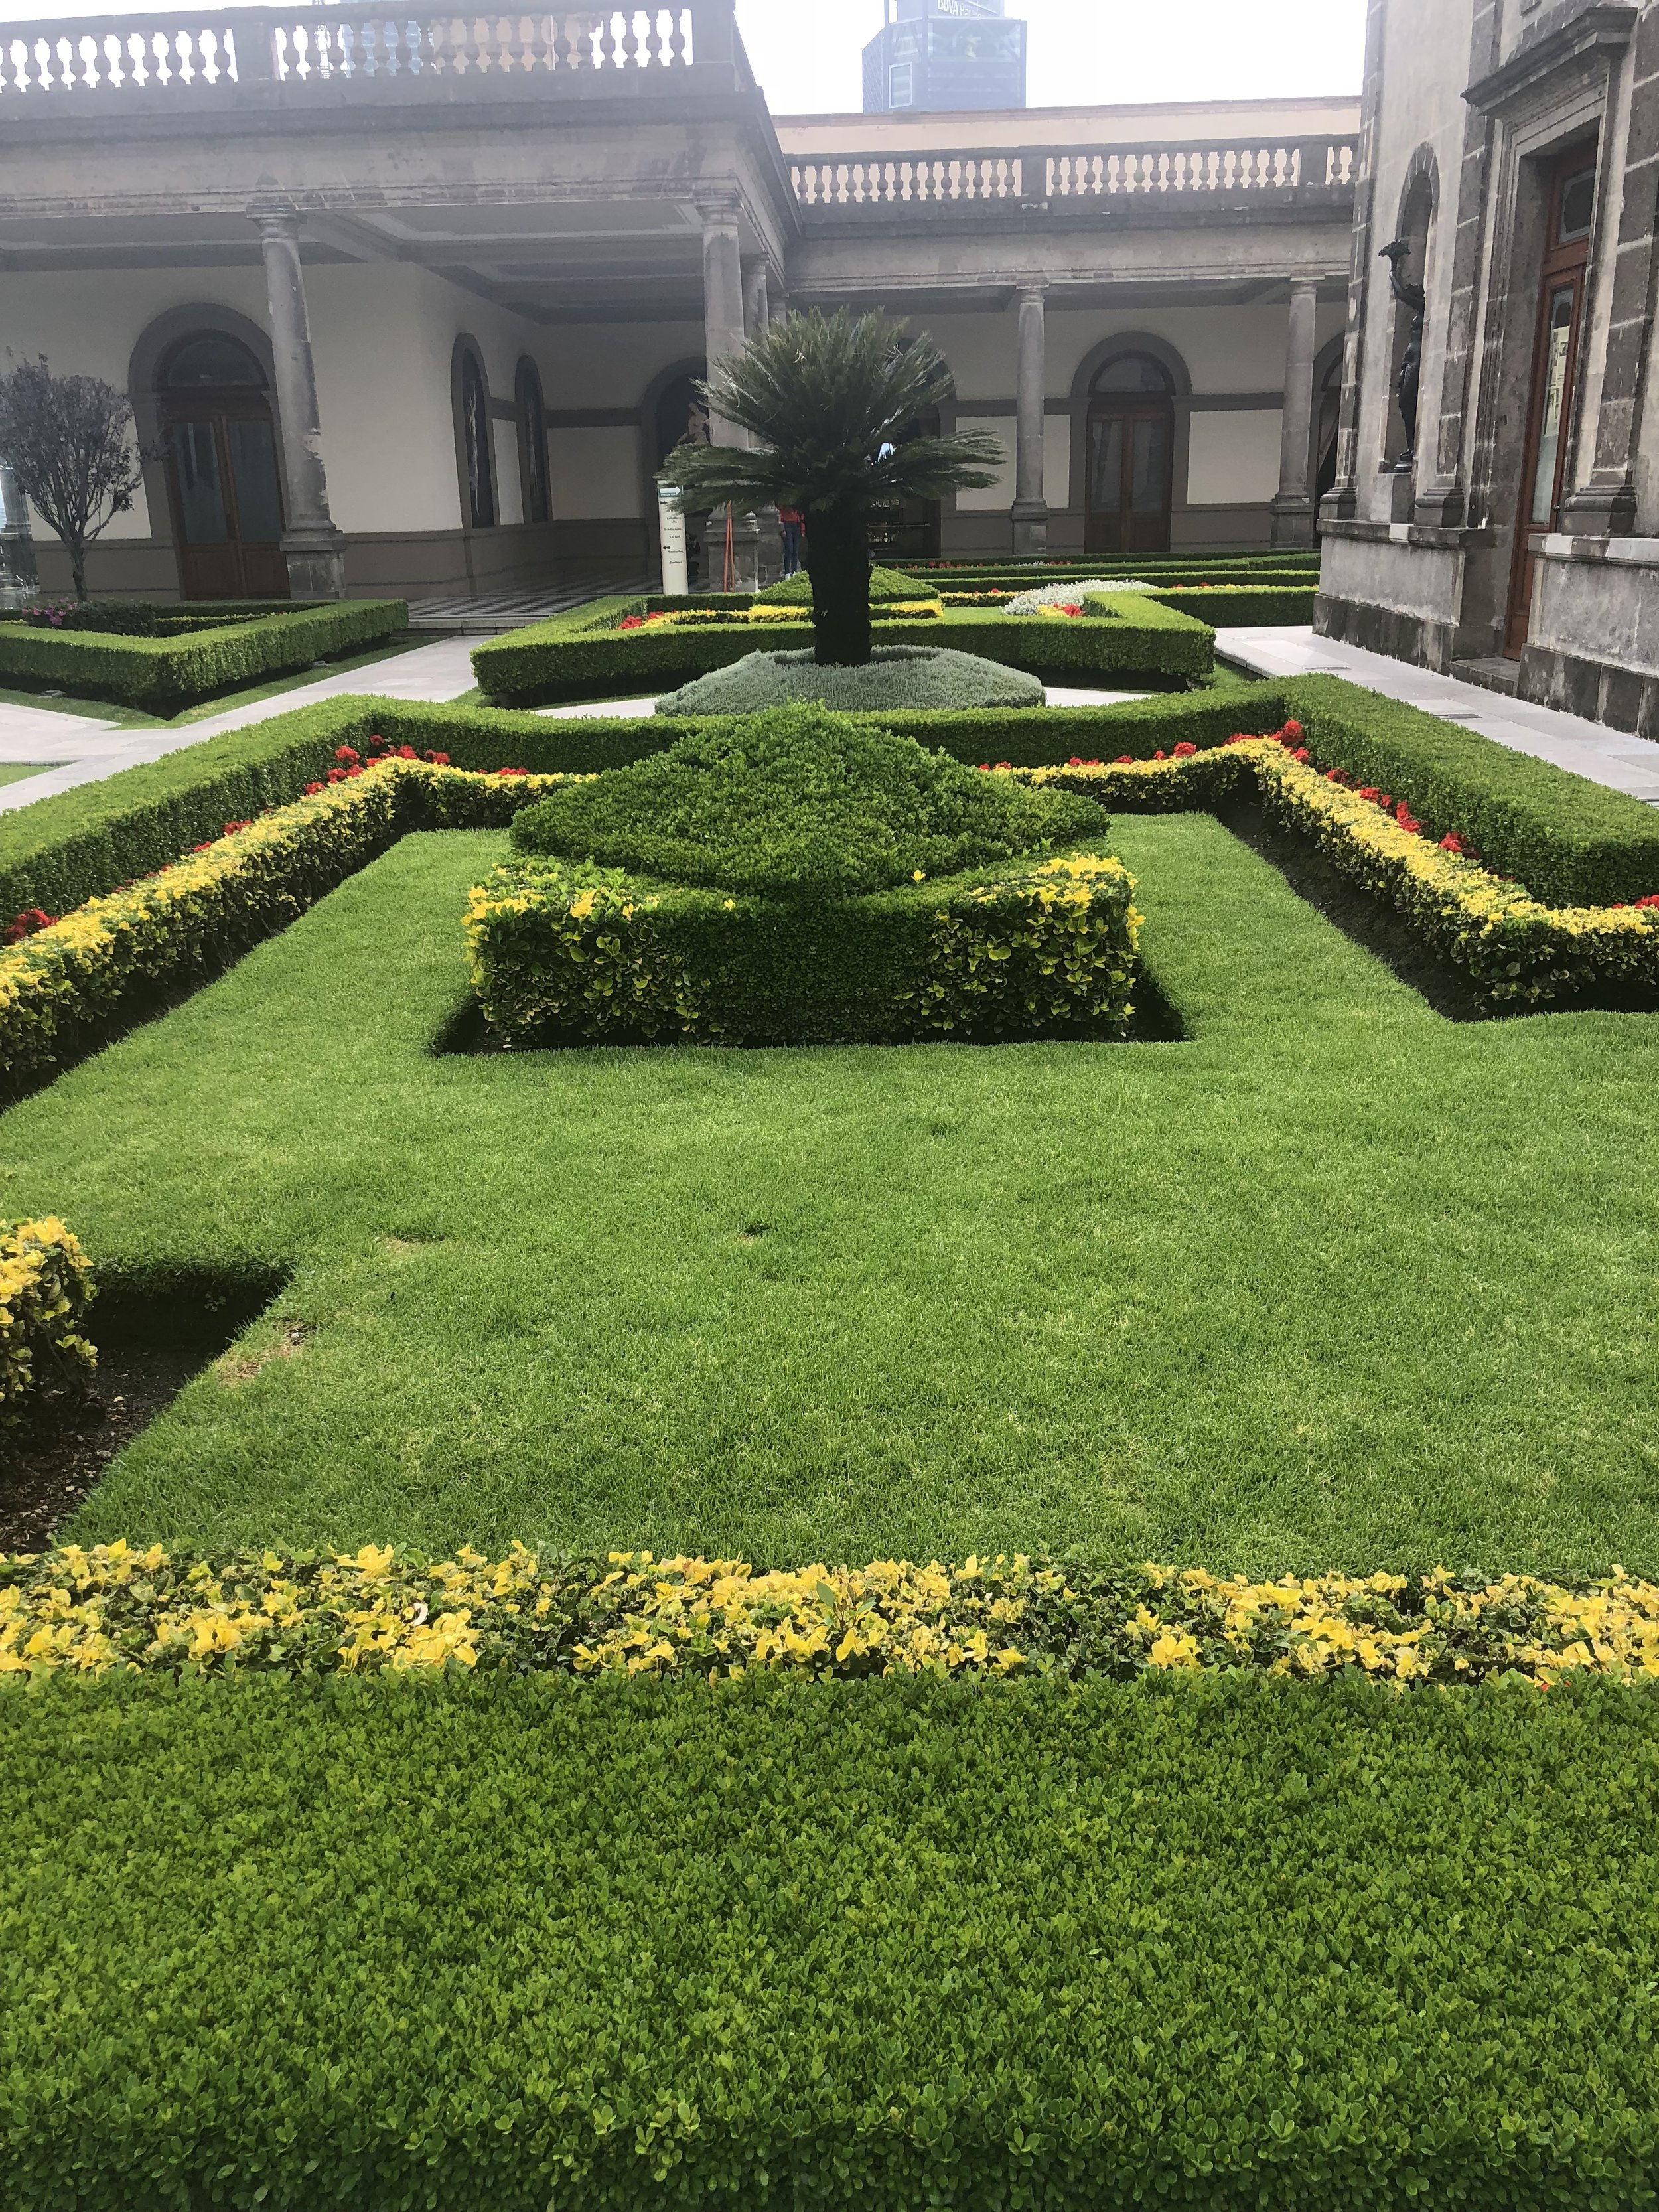 Landscaping at Chapultepec Castle.